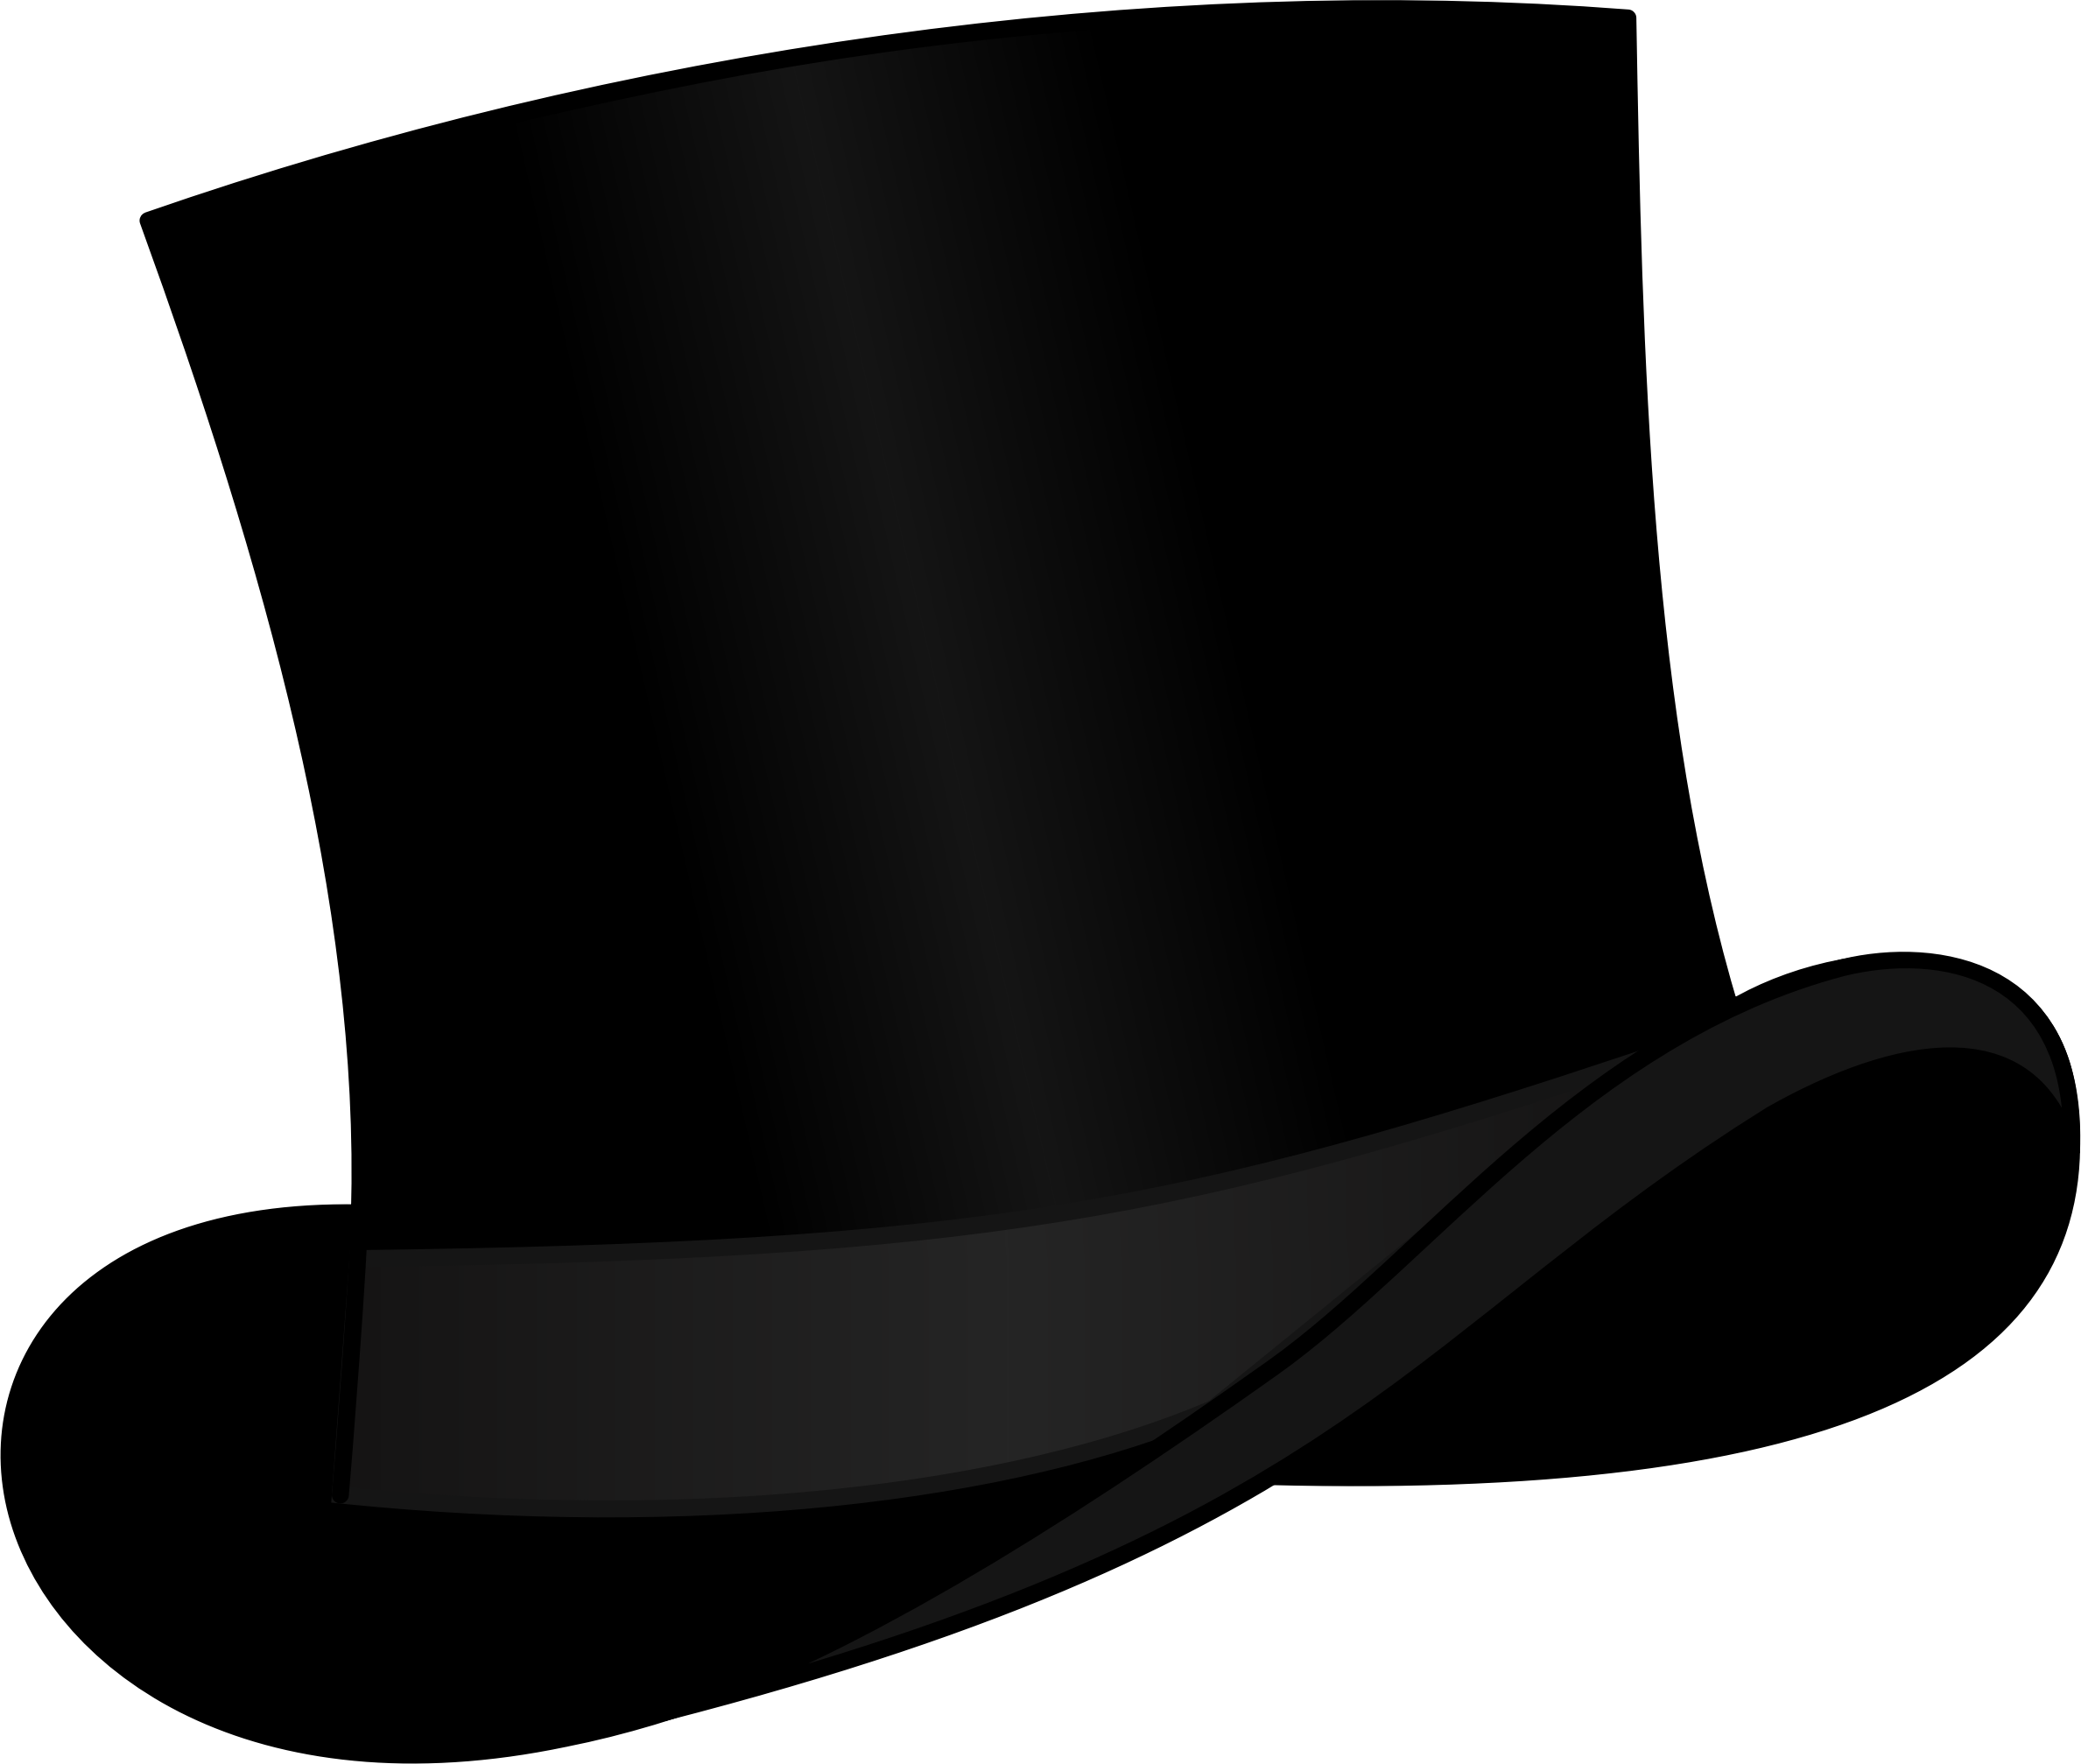 Top hat black by cschreuders